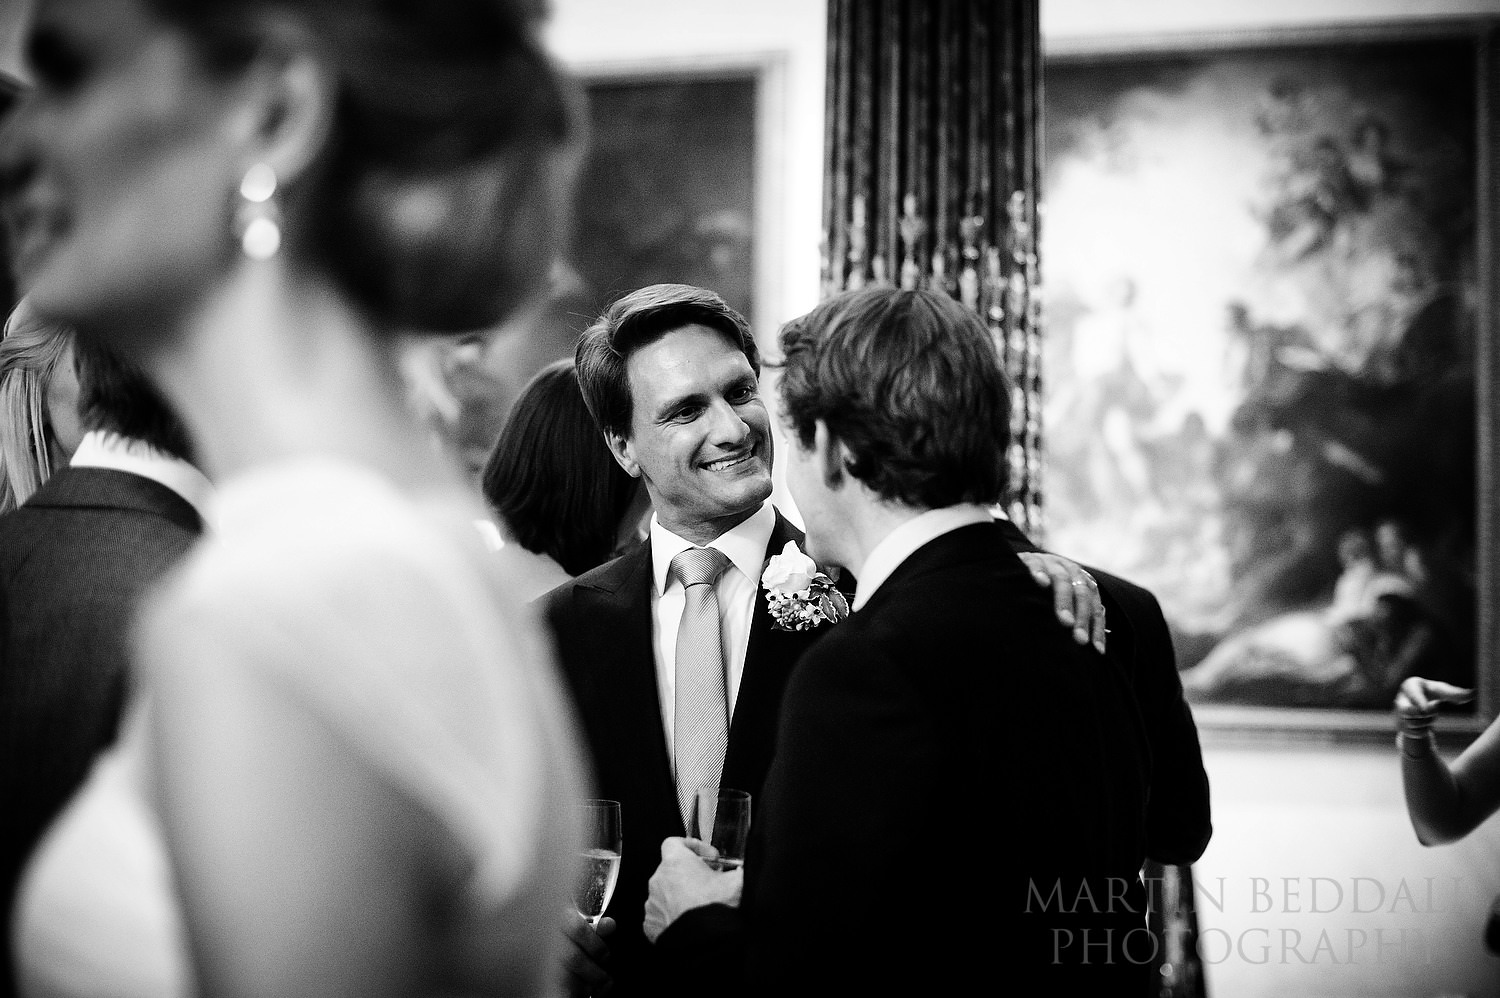 Groom at Wallace Collection wedding reception